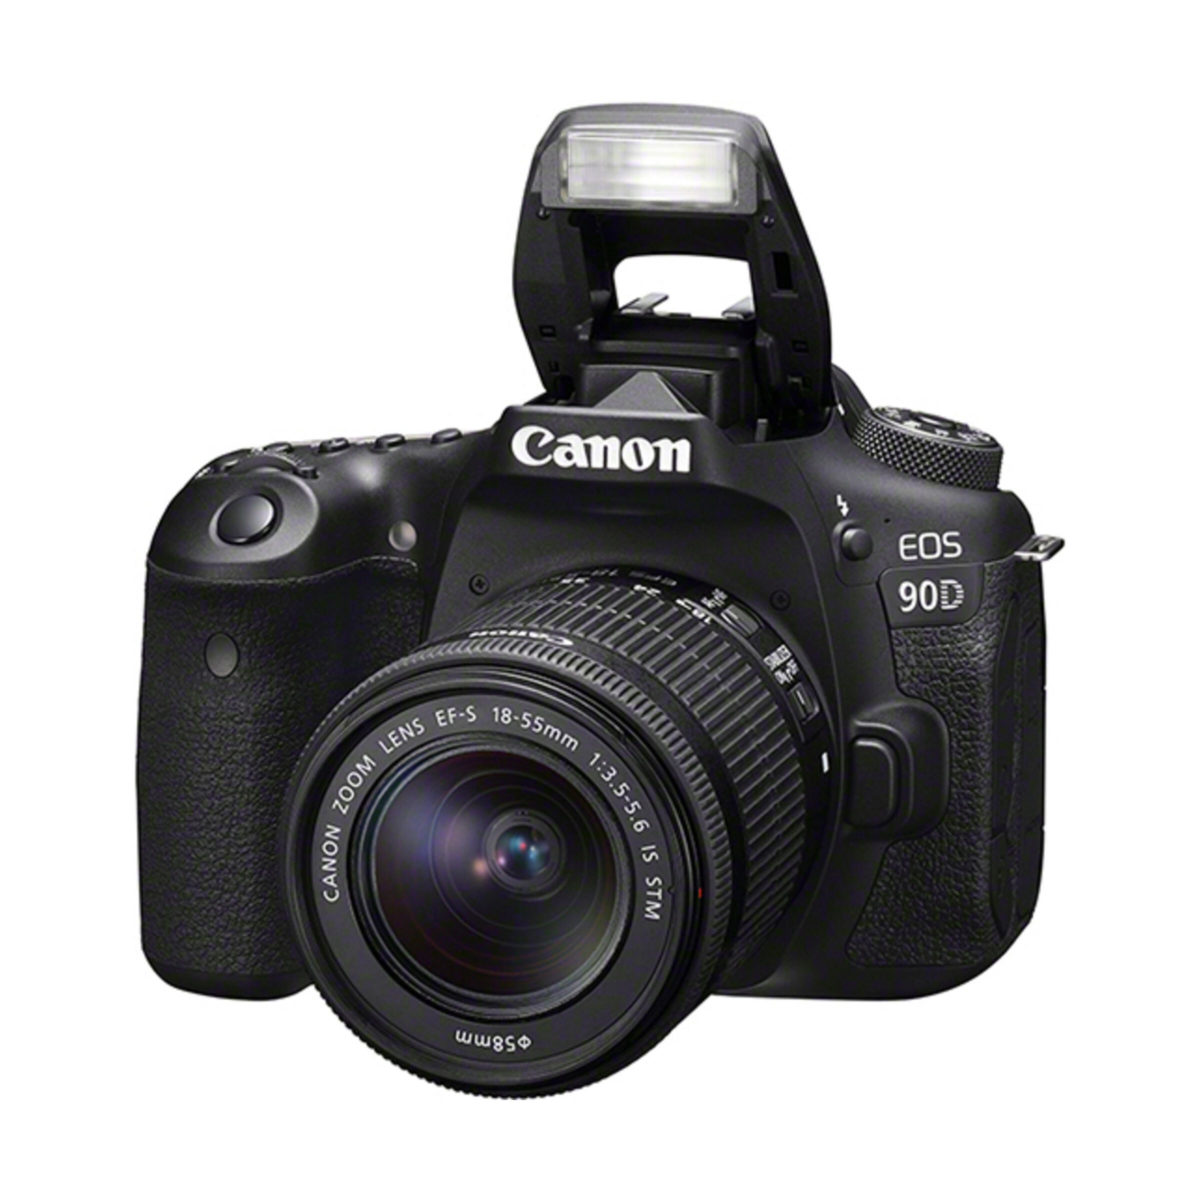 canon_eos_90d_efs_1855_is_stm_06